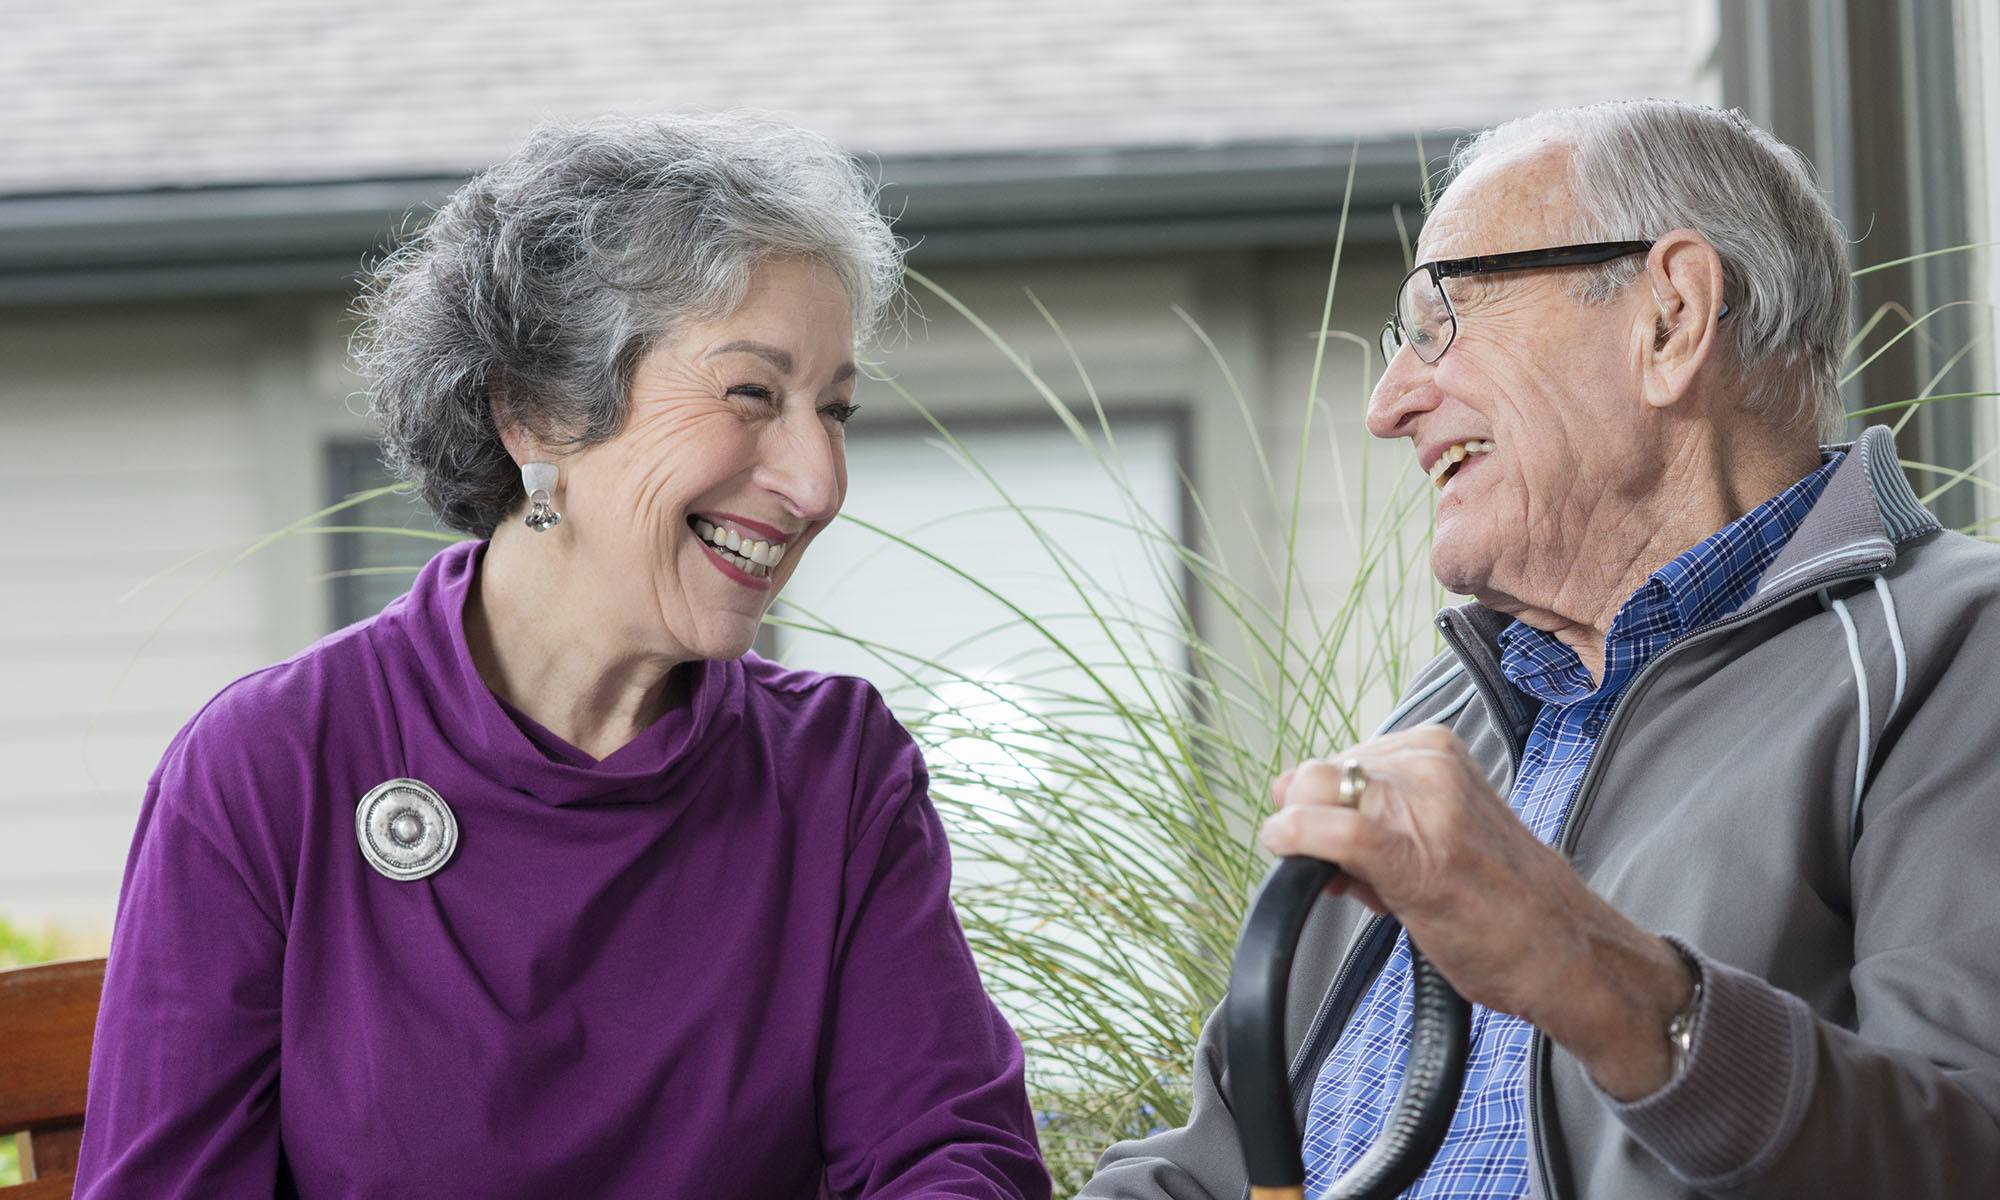 Happiness can be found at senior living in McMinnville, OR